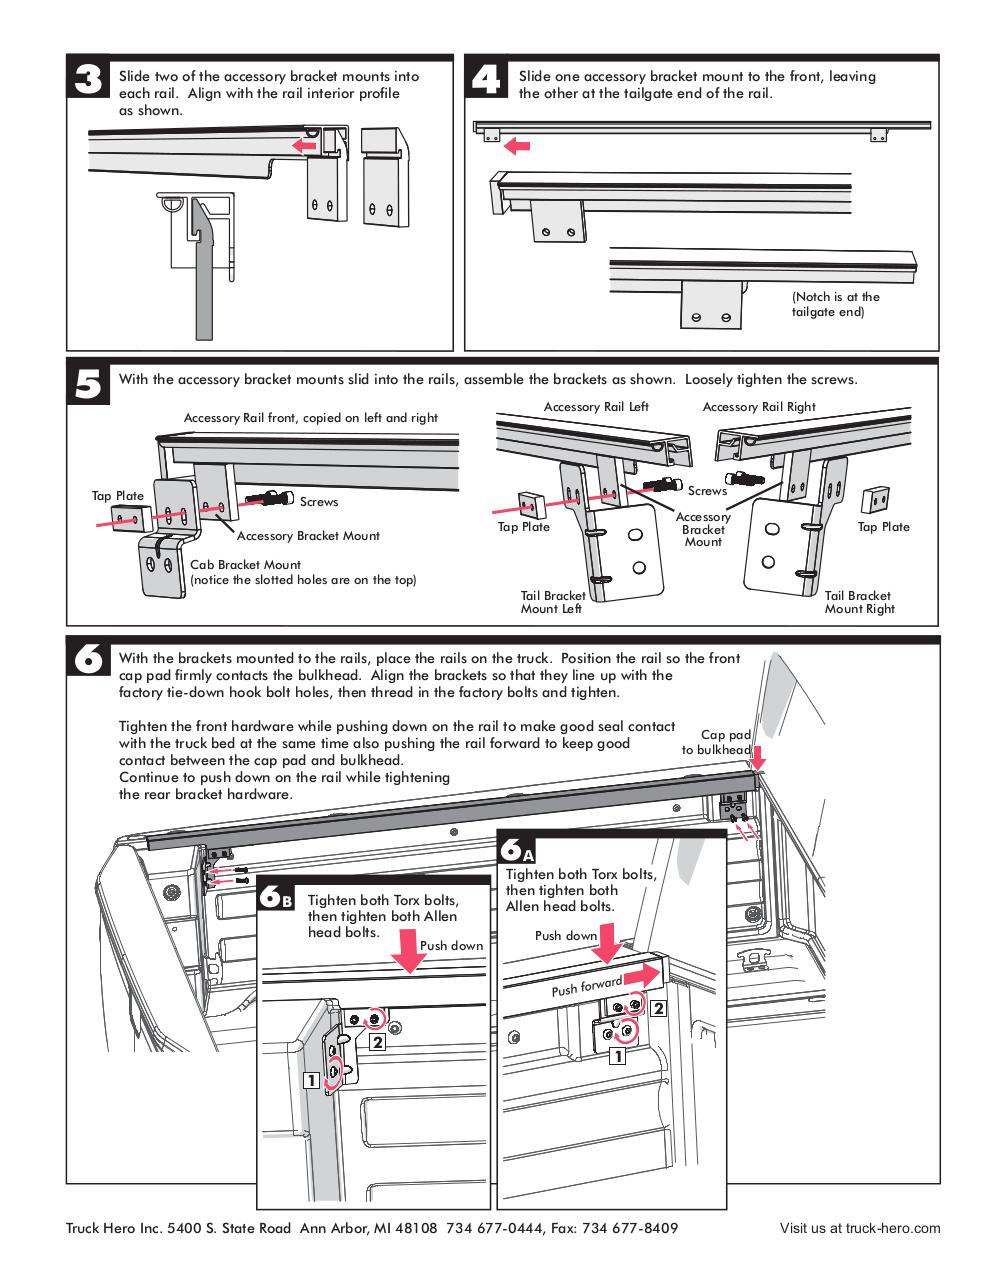 Honda Ridgeline 2017 Adapter Rails Installation Instructions.pdf - page 2/2